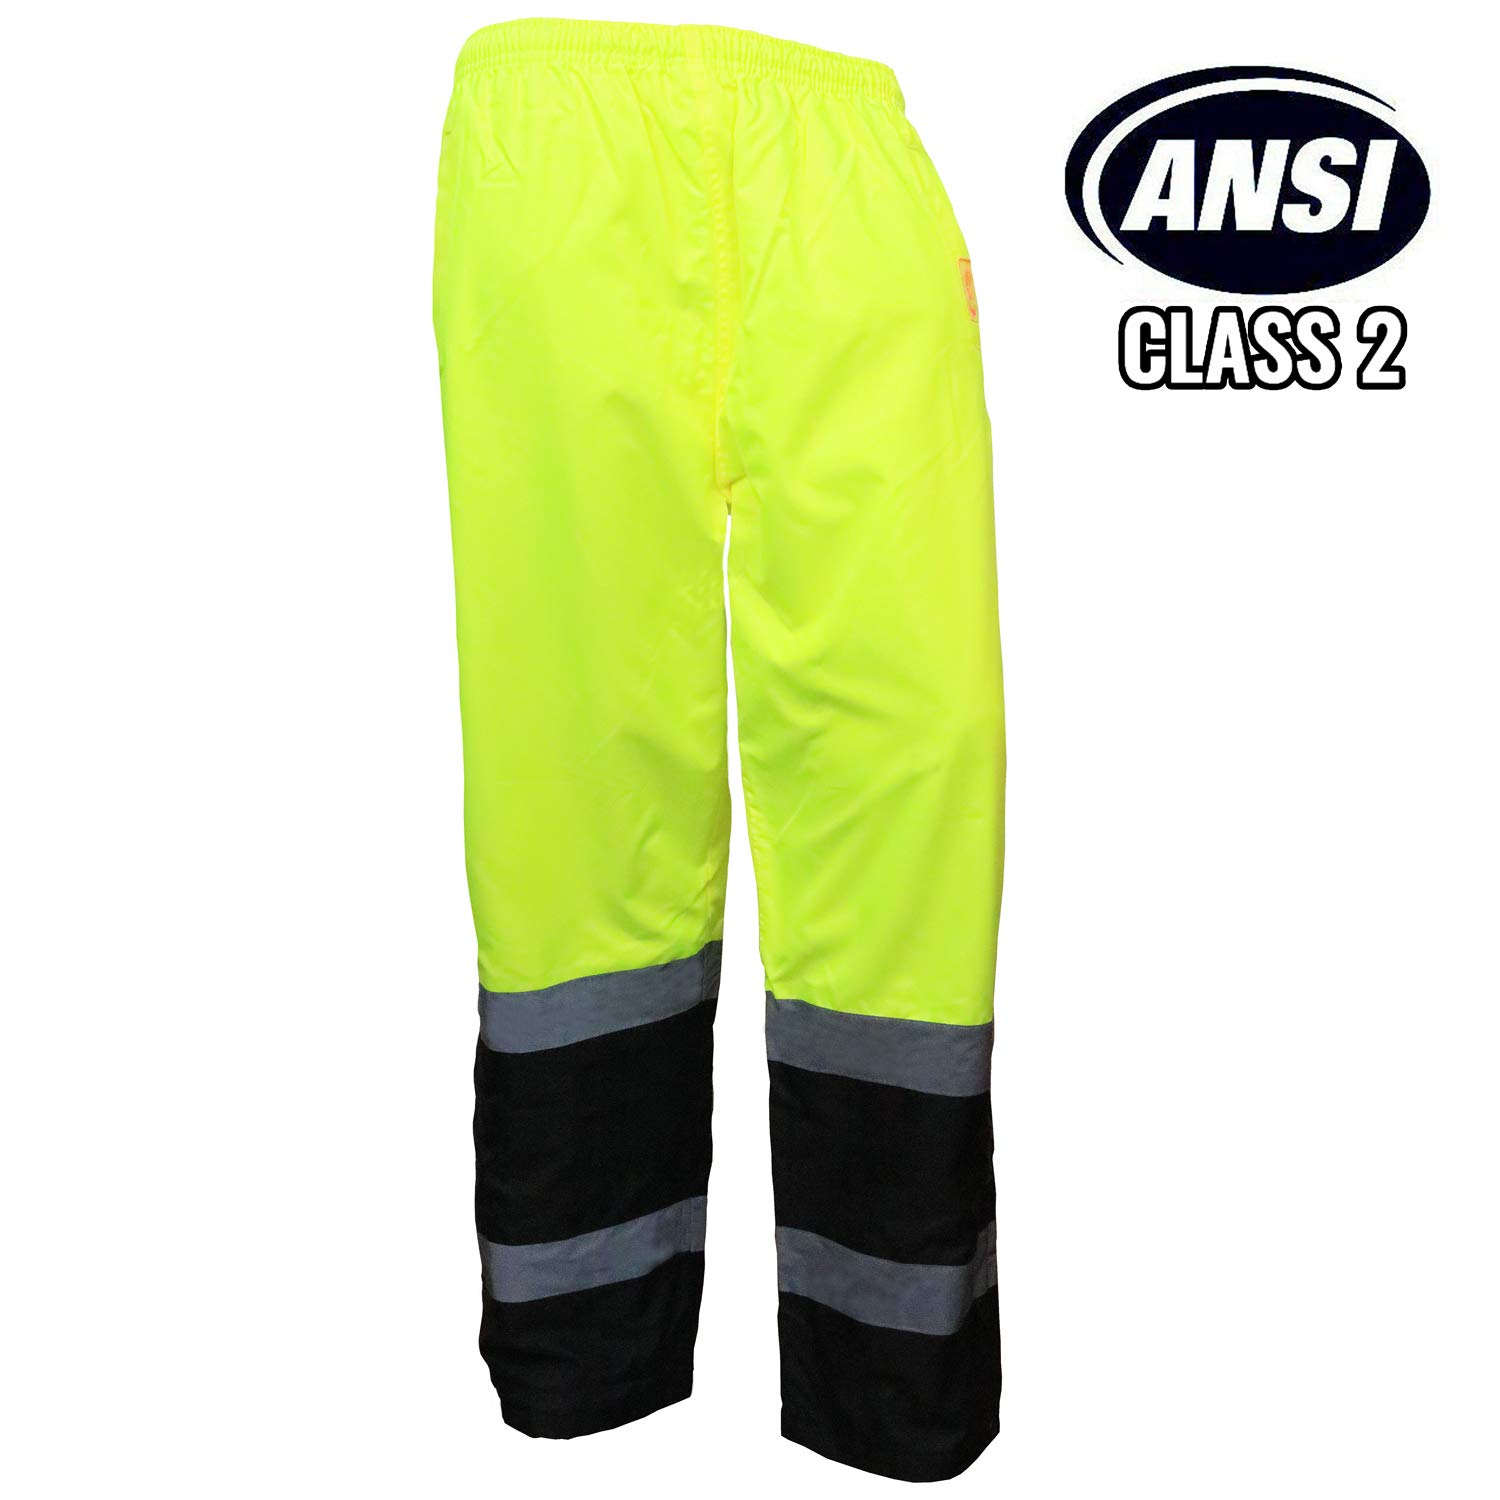 Troy Safety New York Hi-Viz Workwear WP0212 Insulated thermal lined Waterproof Rain Pants Over Trousers (LIME, 4XL)